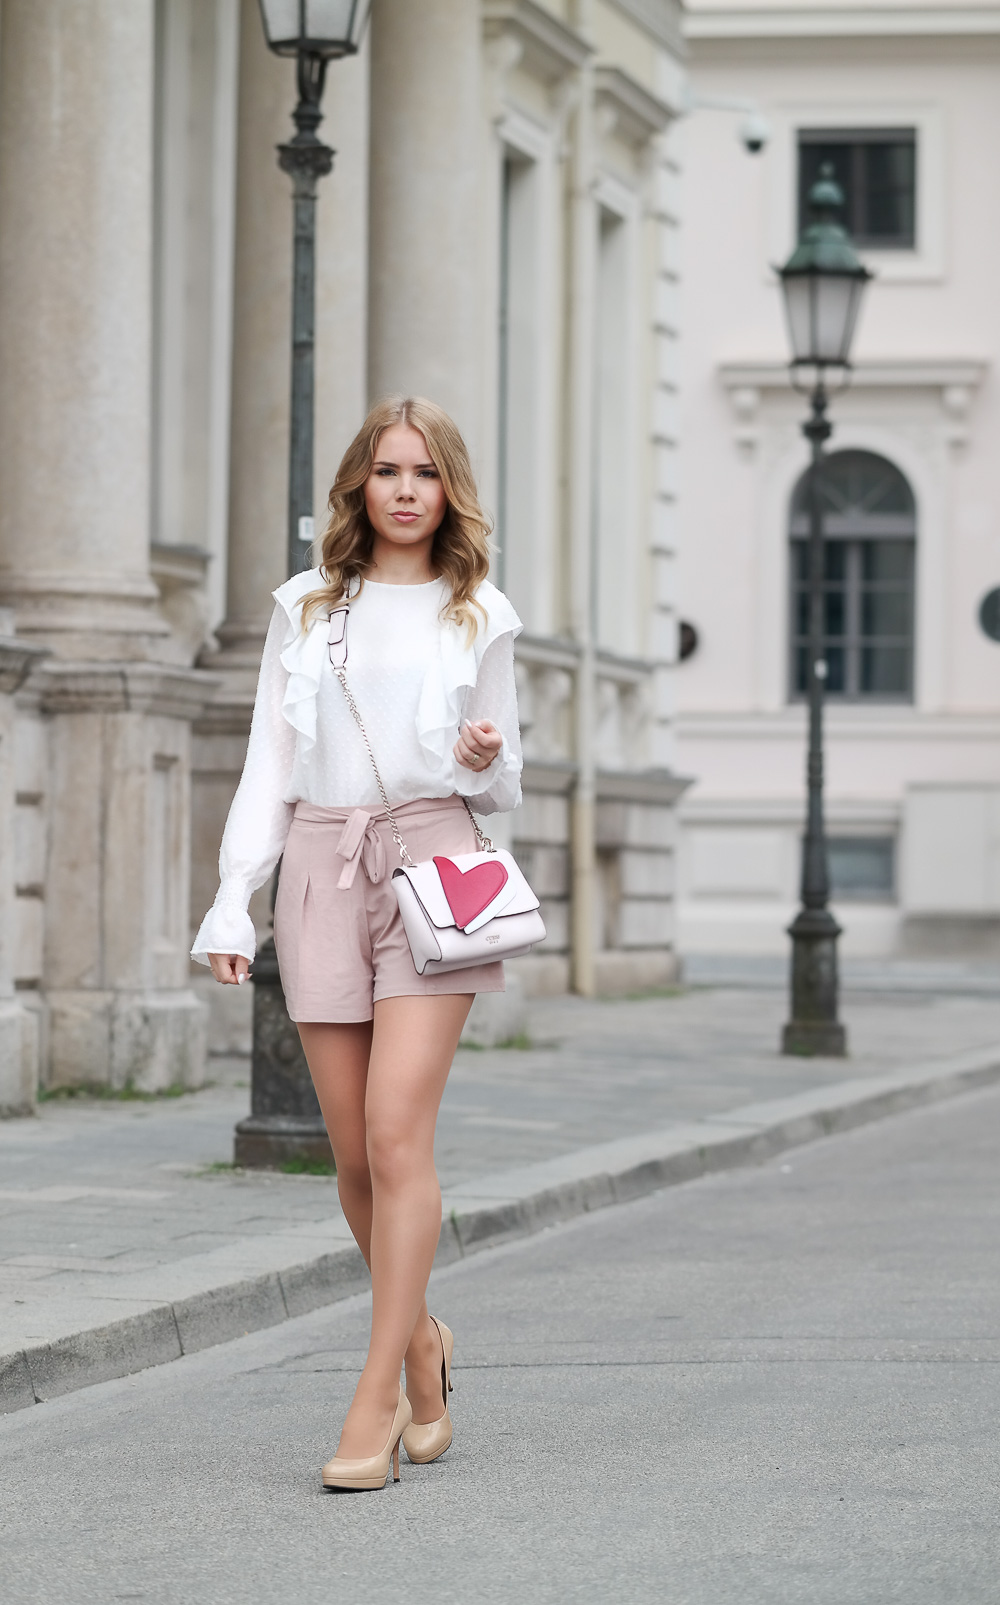 Styleblogger-Sommer Look Rüschen Volant High Waisted Shorts High Heels Guess Tasche